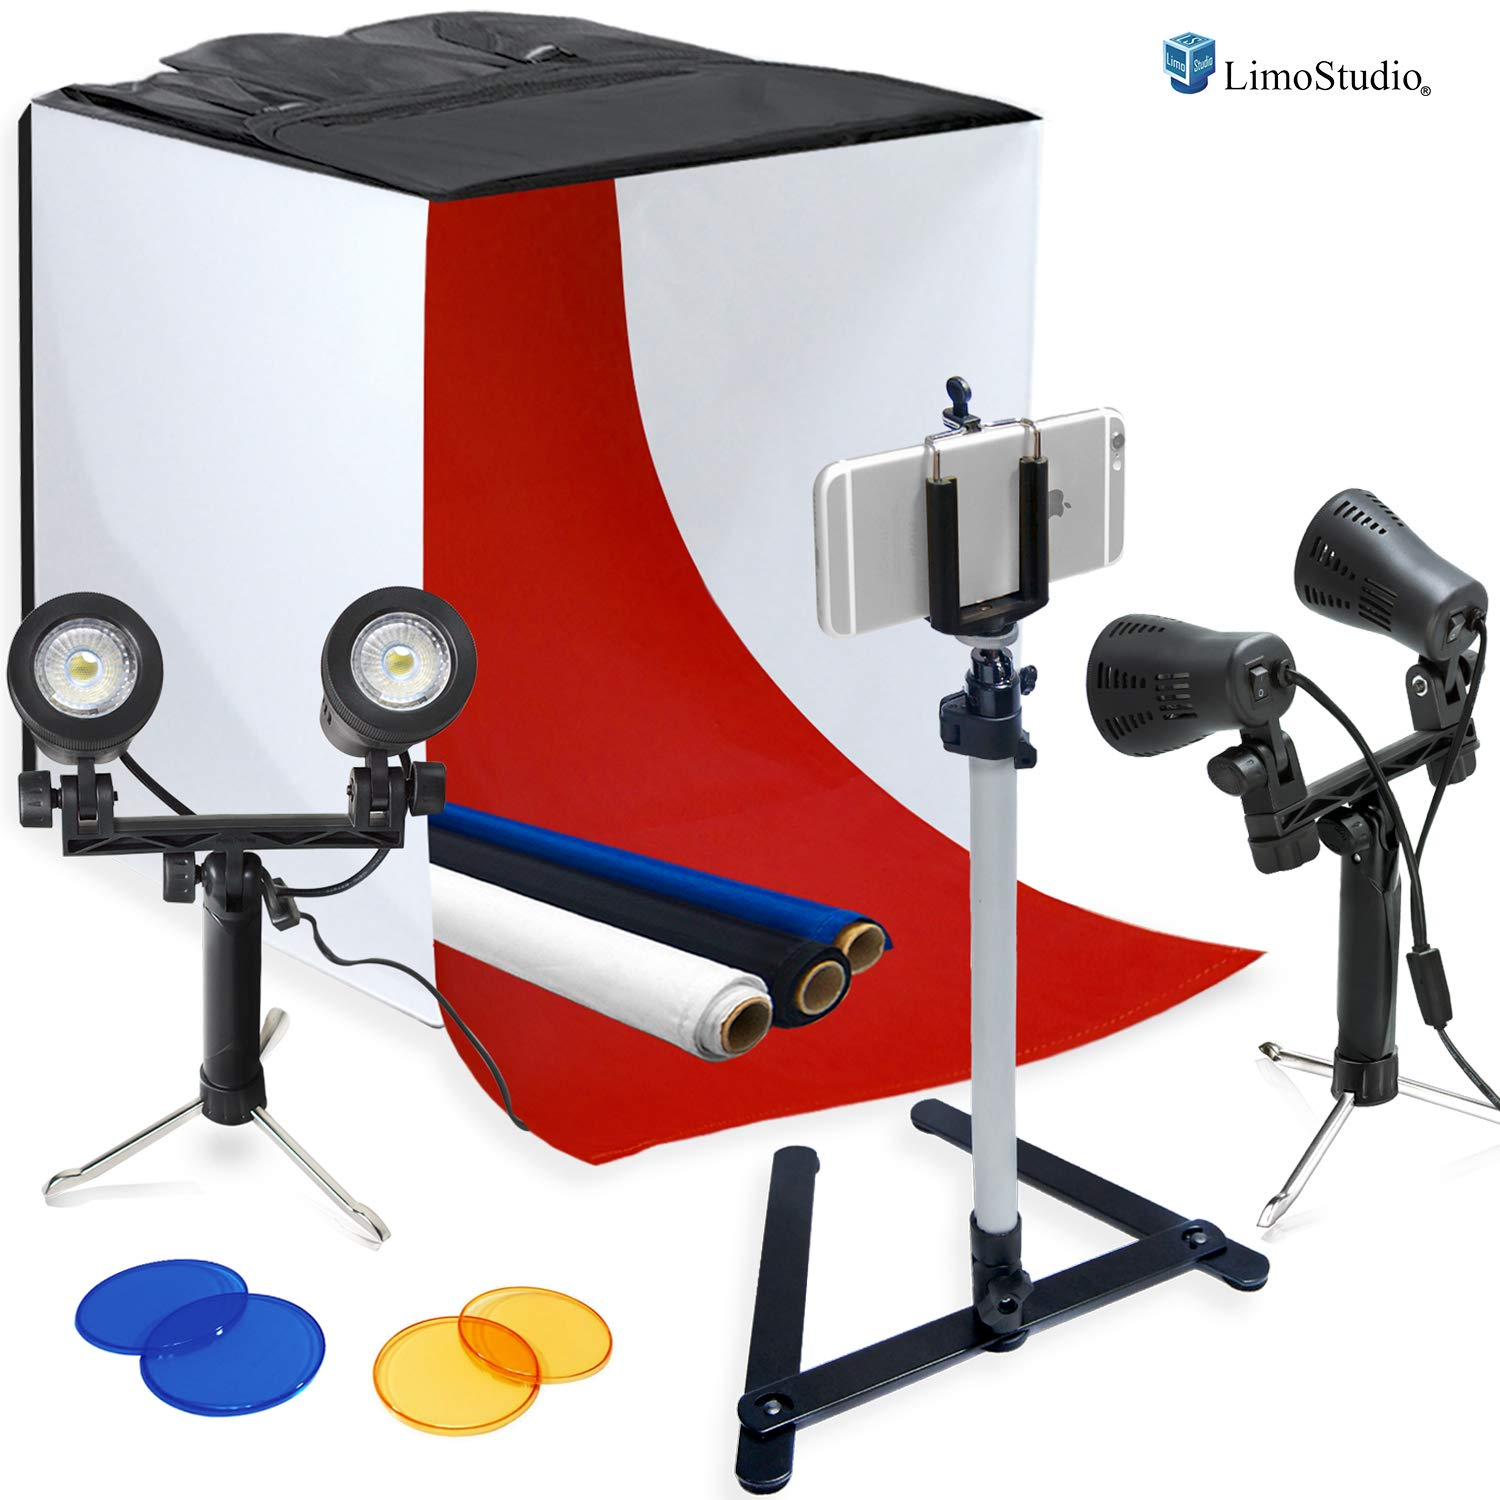 LimoStudio Photography Table Top Photo Light Tent Kit, 24'' Photo Light Box, Continous Lighting Kit, Camera Tripod & Cell Phone Holder AGG1069 by LimoStudio